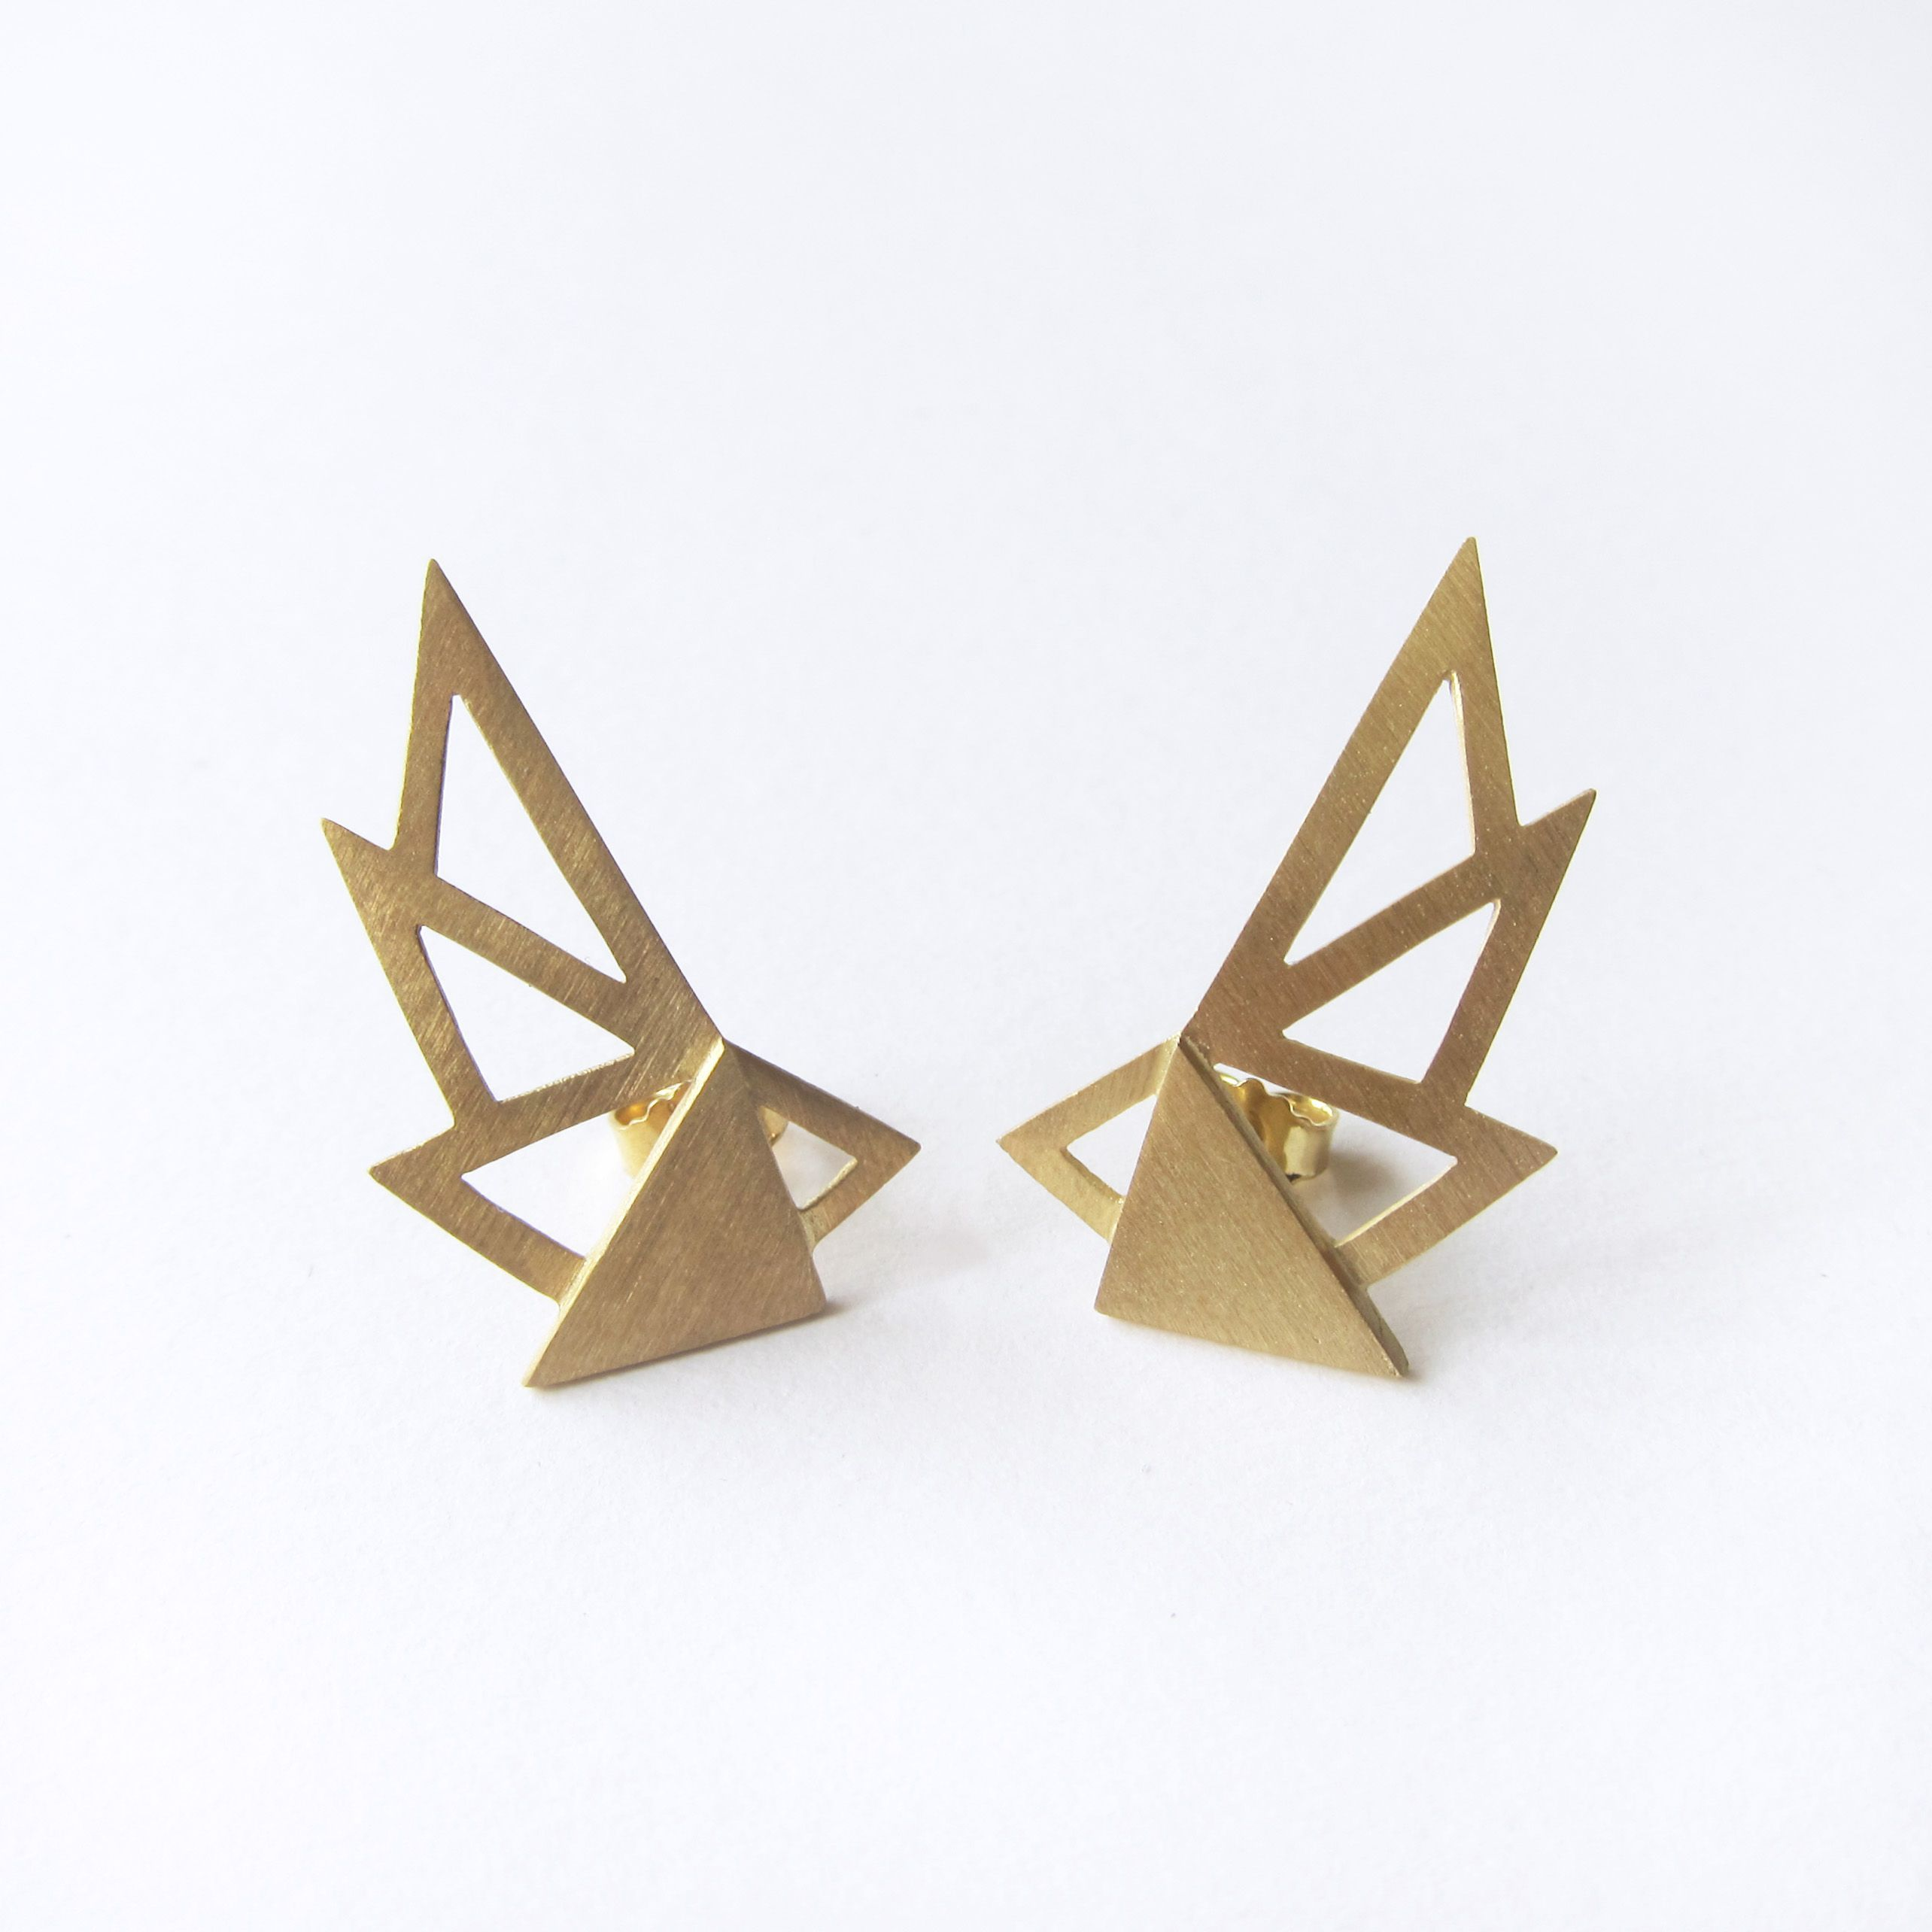 in jewelry architecture find nod pinterest from earrings geometric beauty and pin with trend modernism to simplicity the pyramid adeleline triangle is a stud these metal